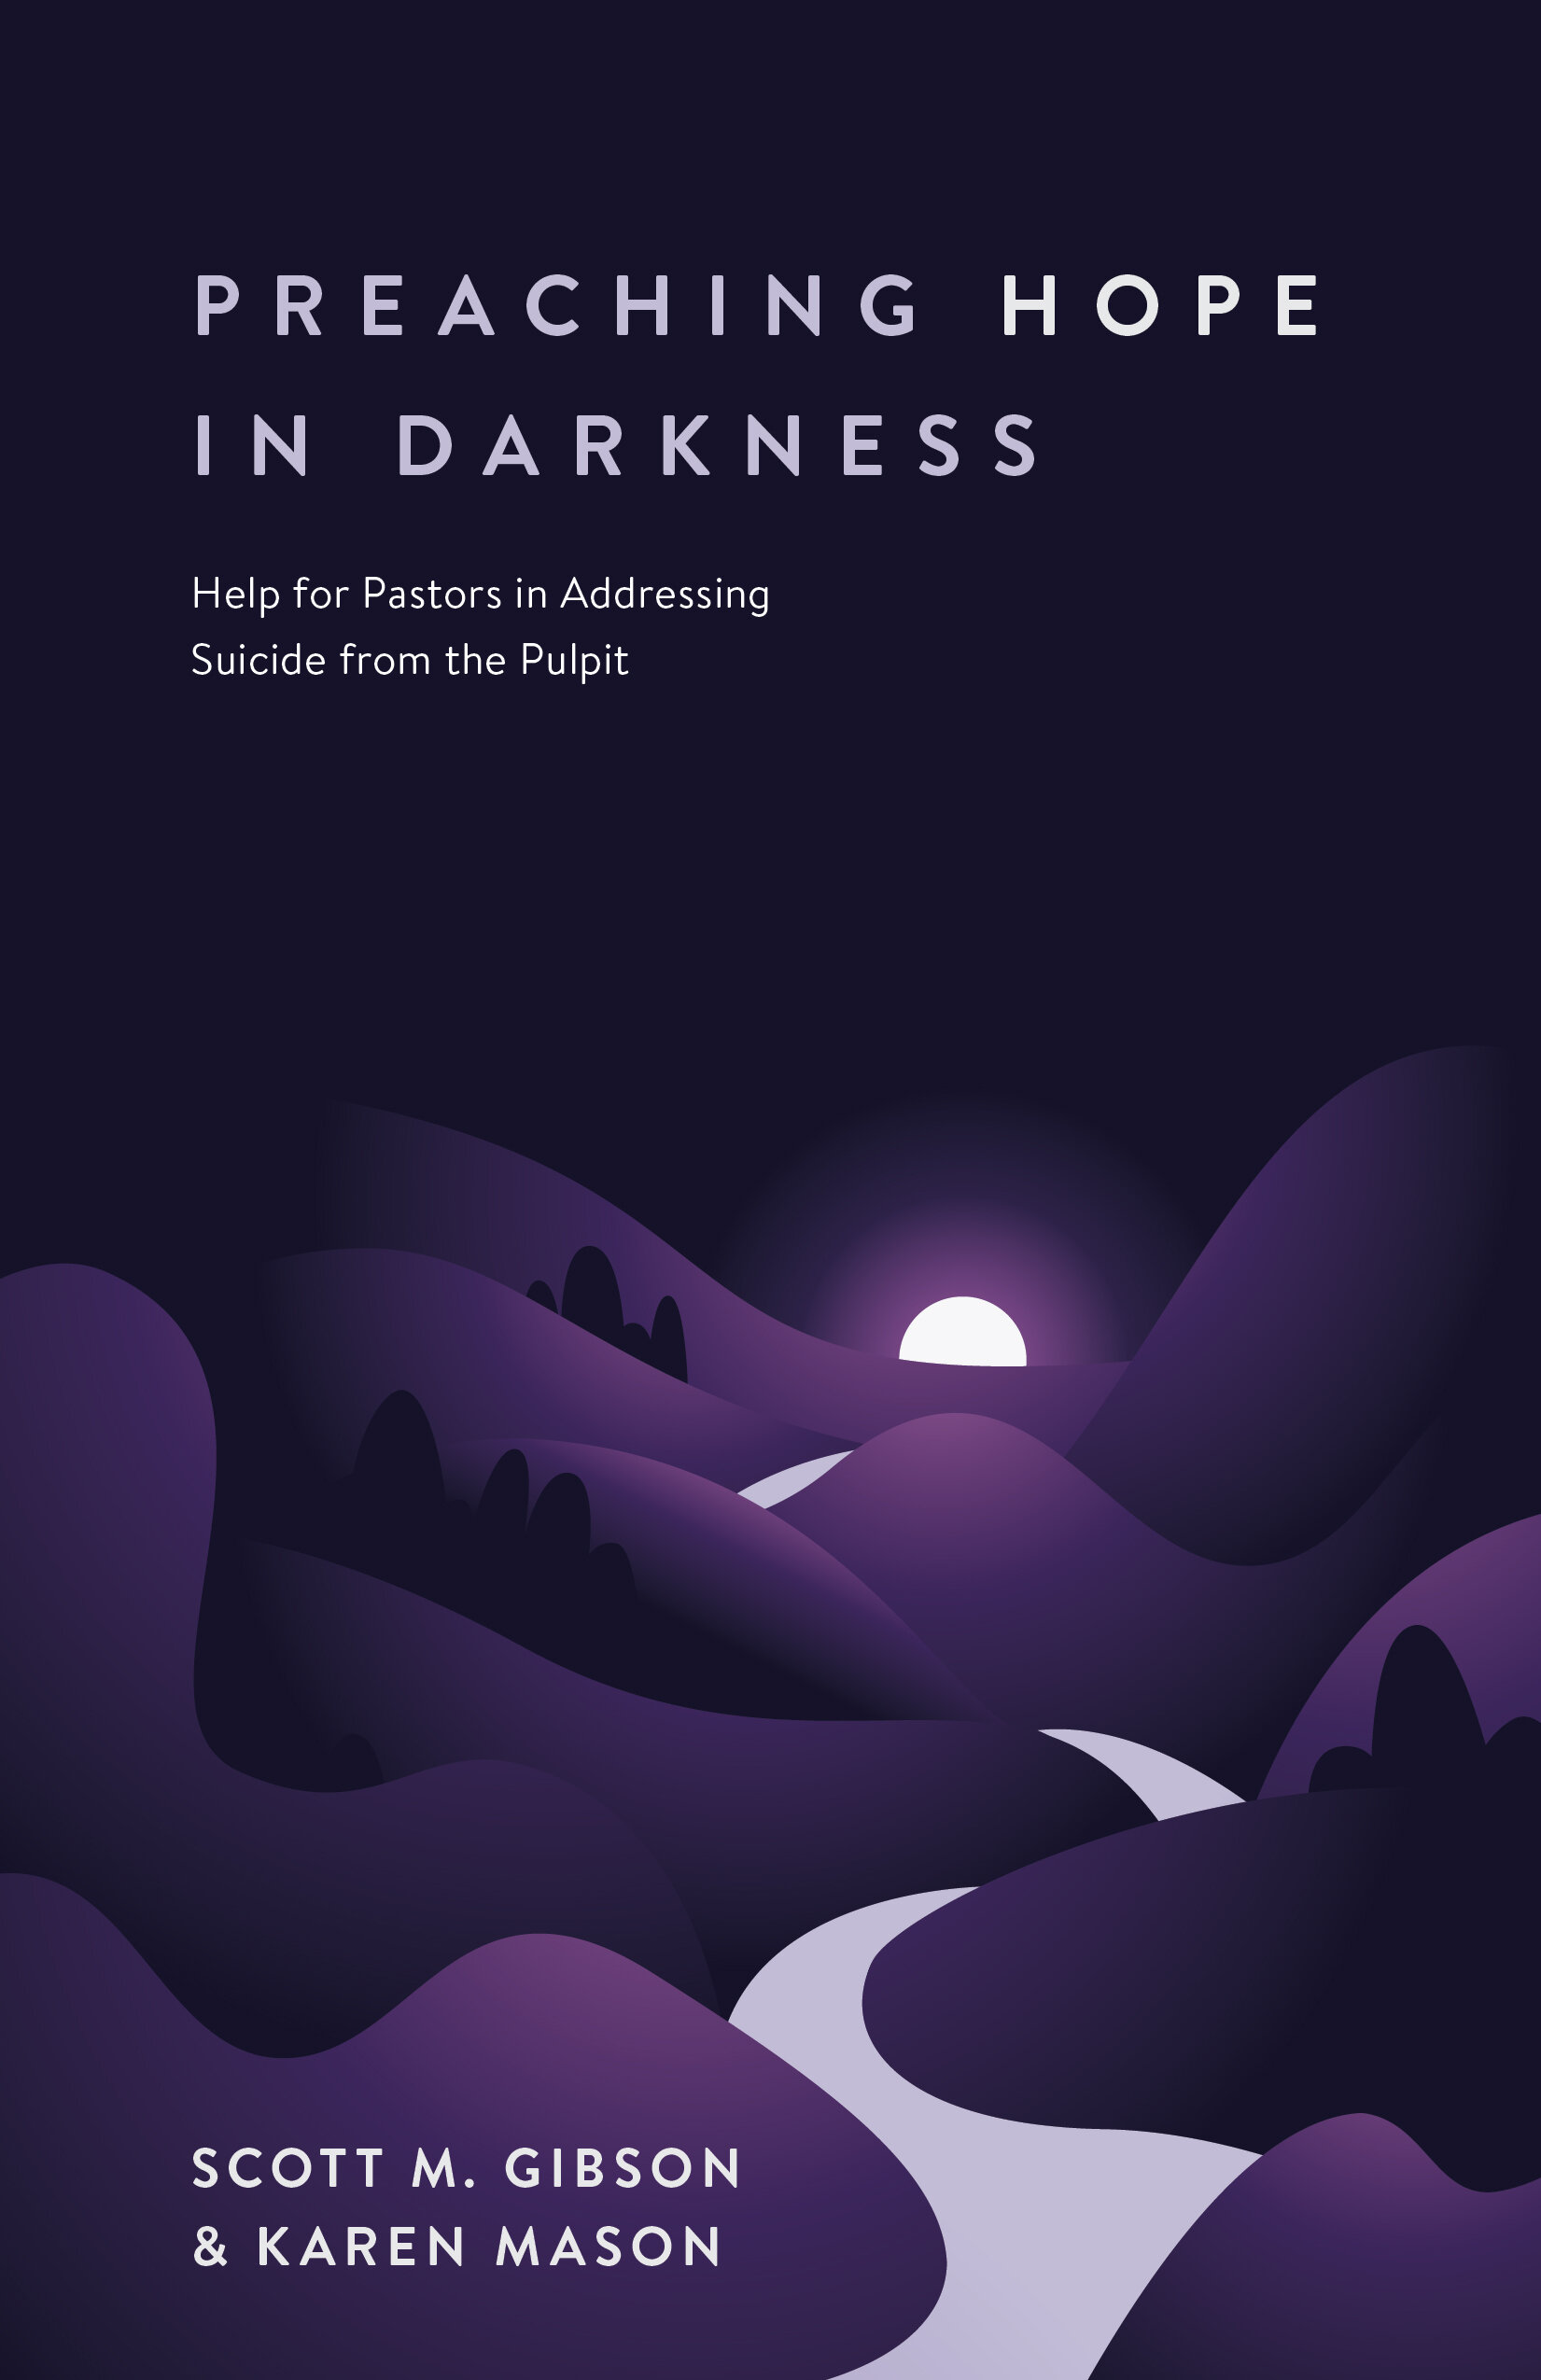 Preaching Hope in Darkness